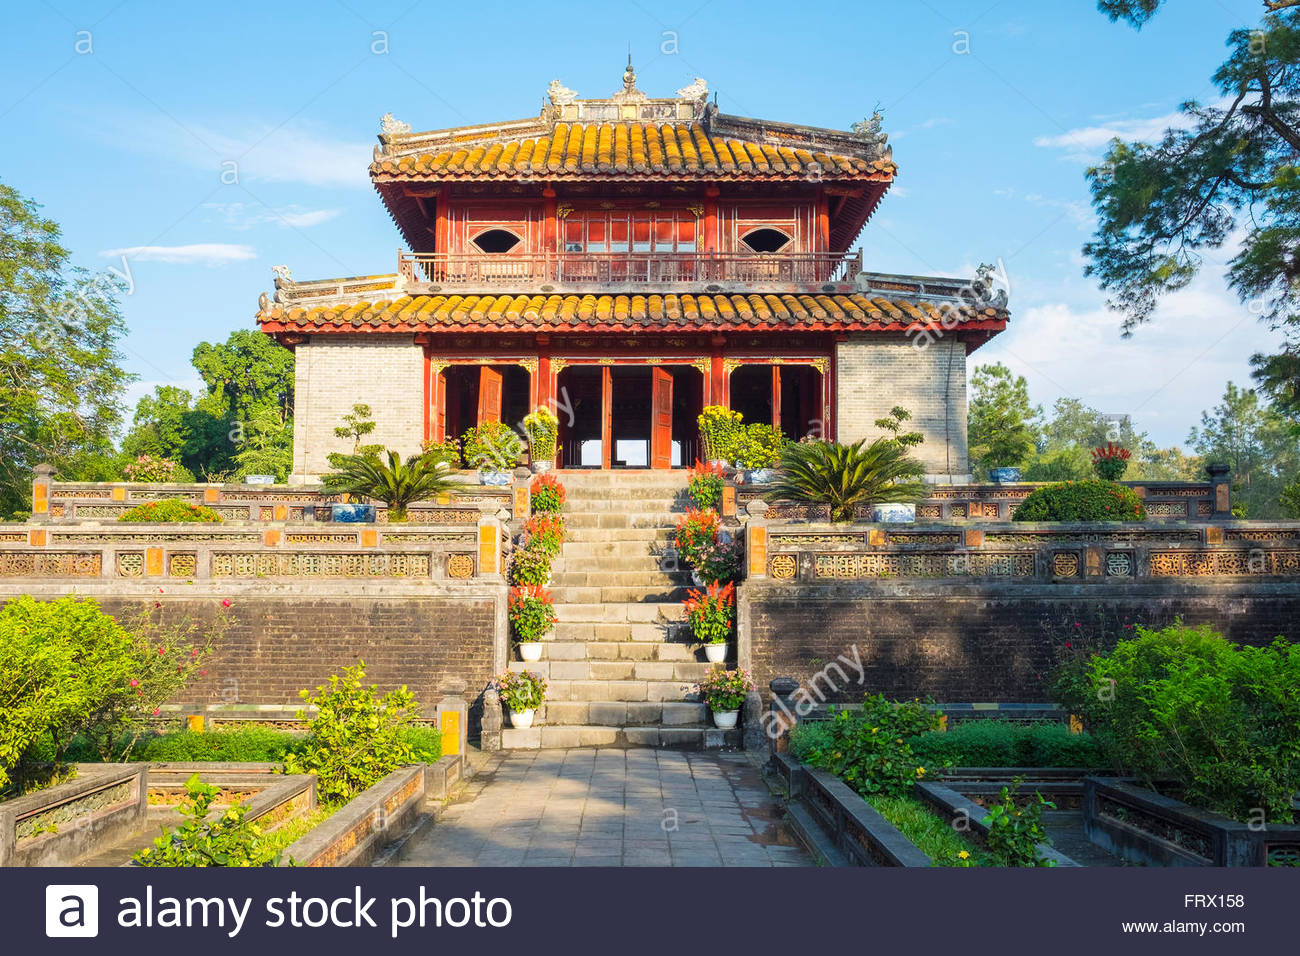 Tomb of Minh Mang (Lang Minh Mang), Huong Tra District, Thua Thien-Hue Province, Vietnam - Stock Image